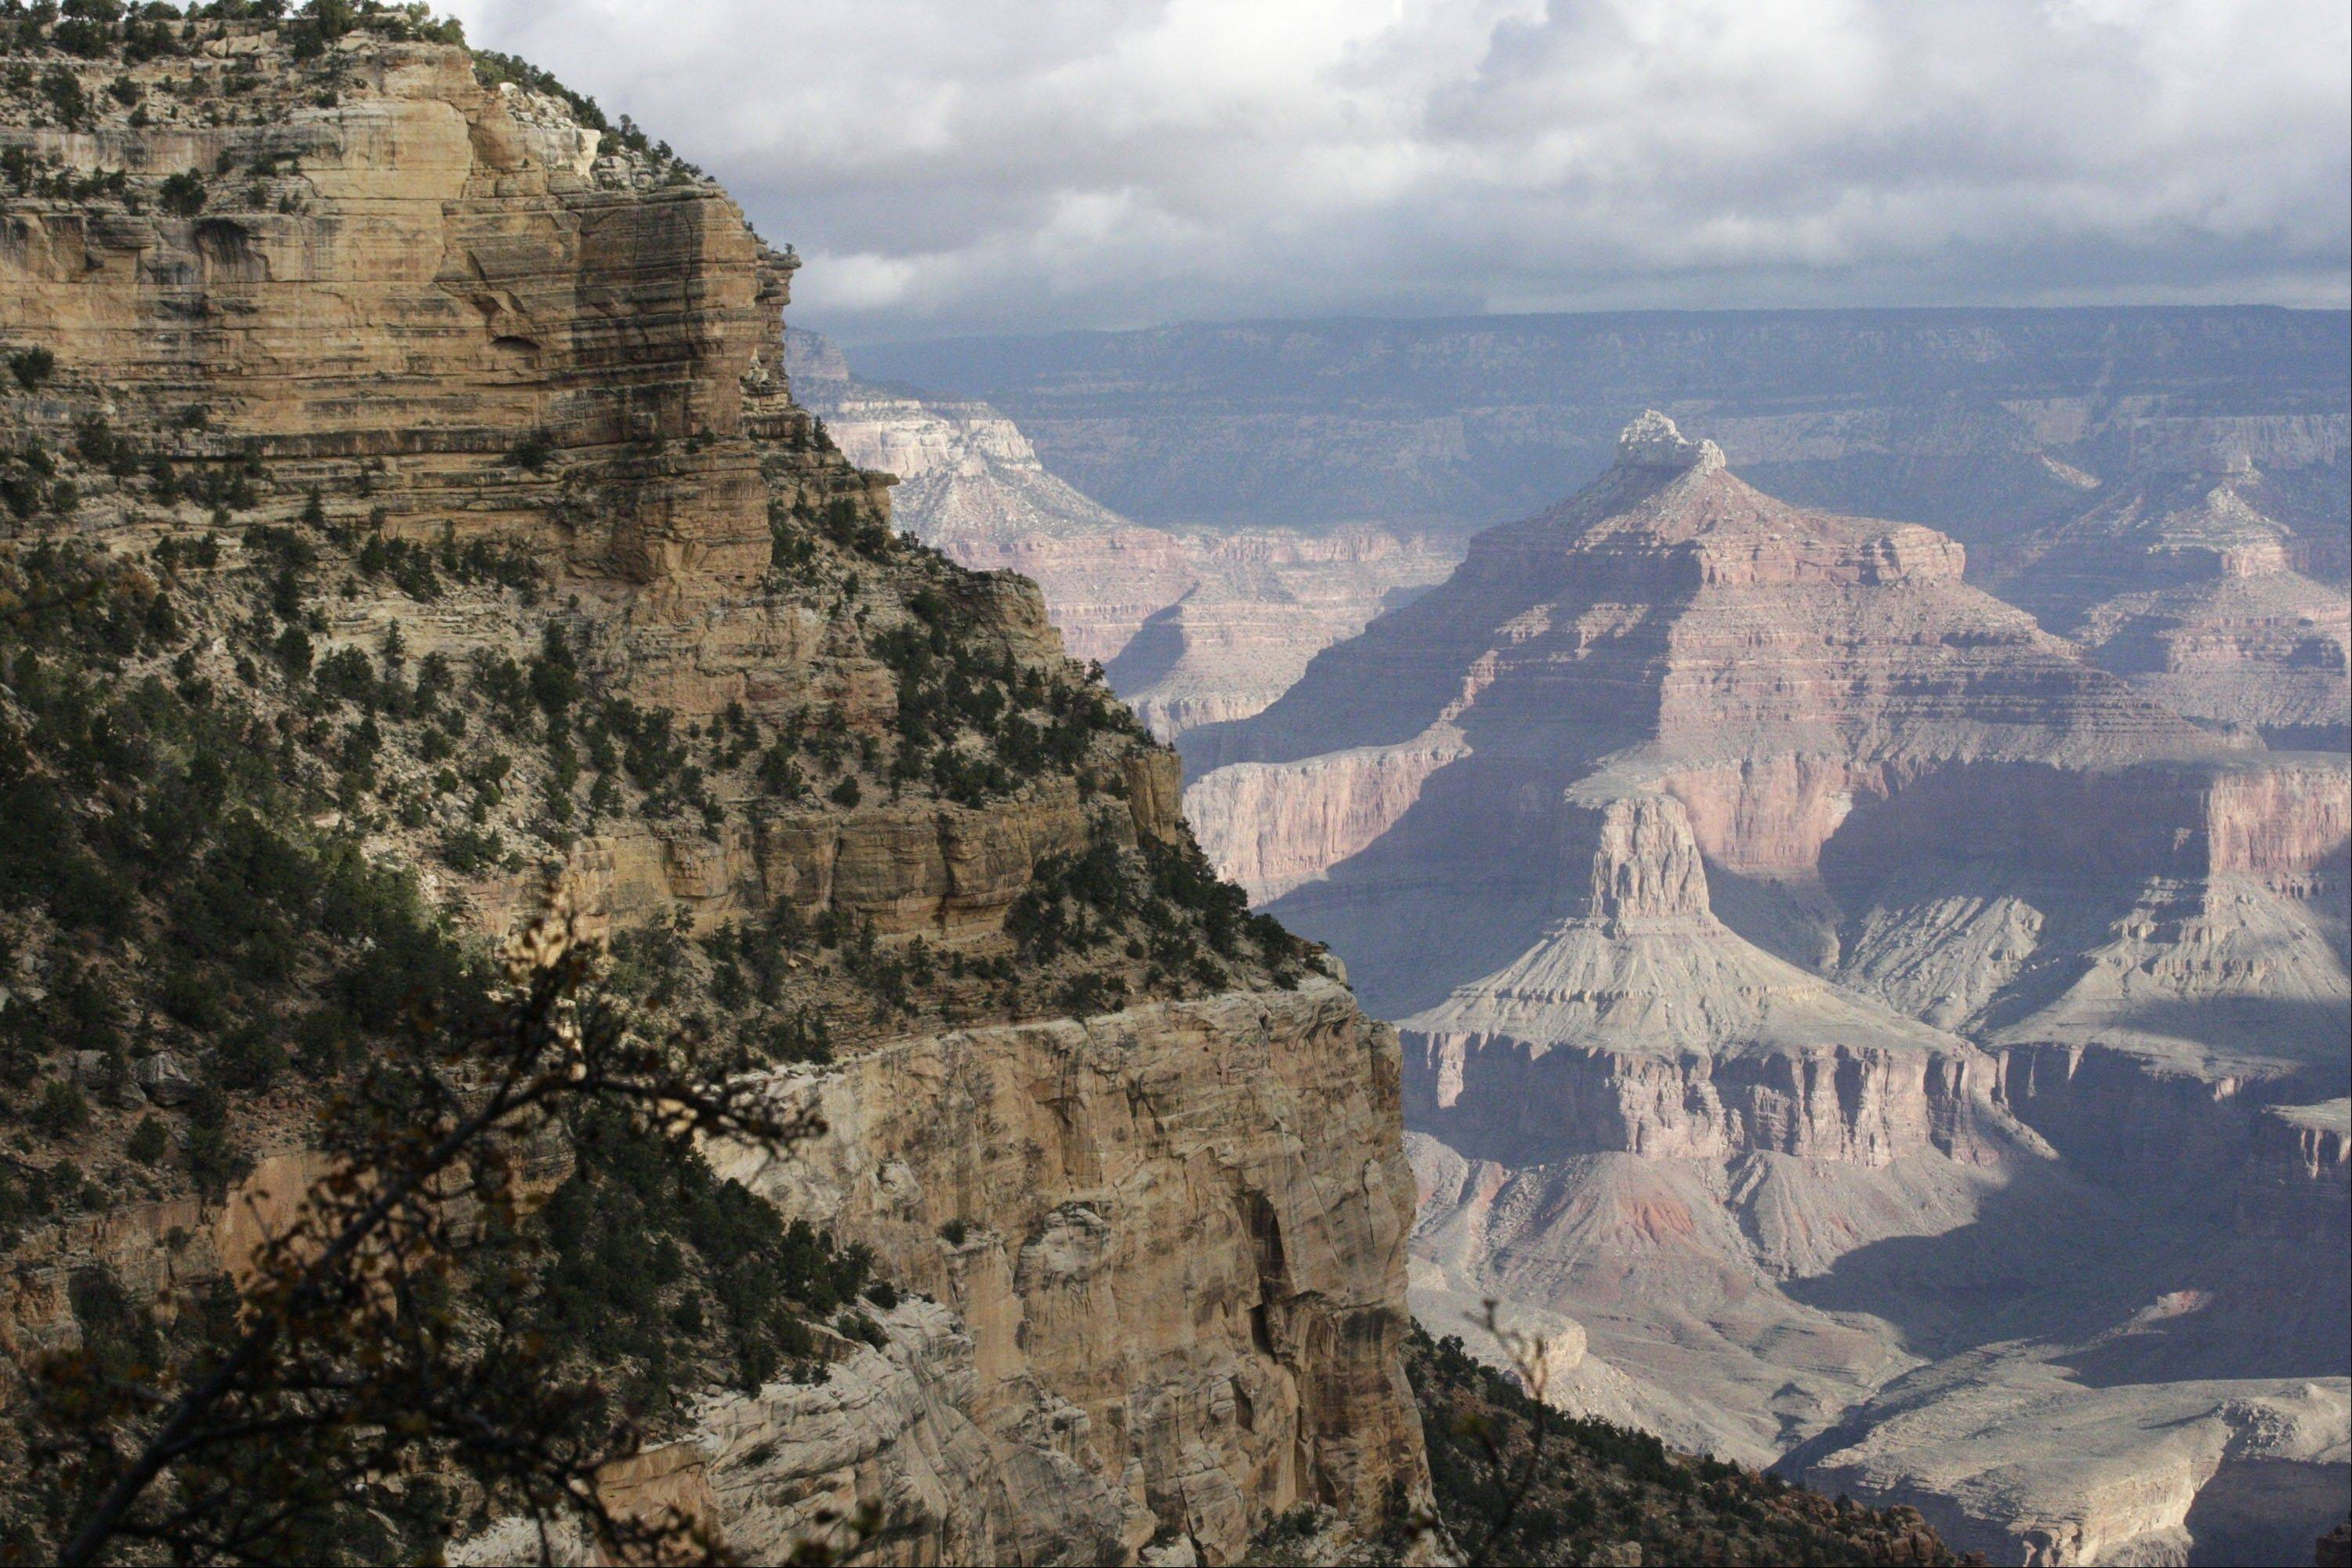 A view from the South Rim of the Grand Canyon National Park in Arizona.